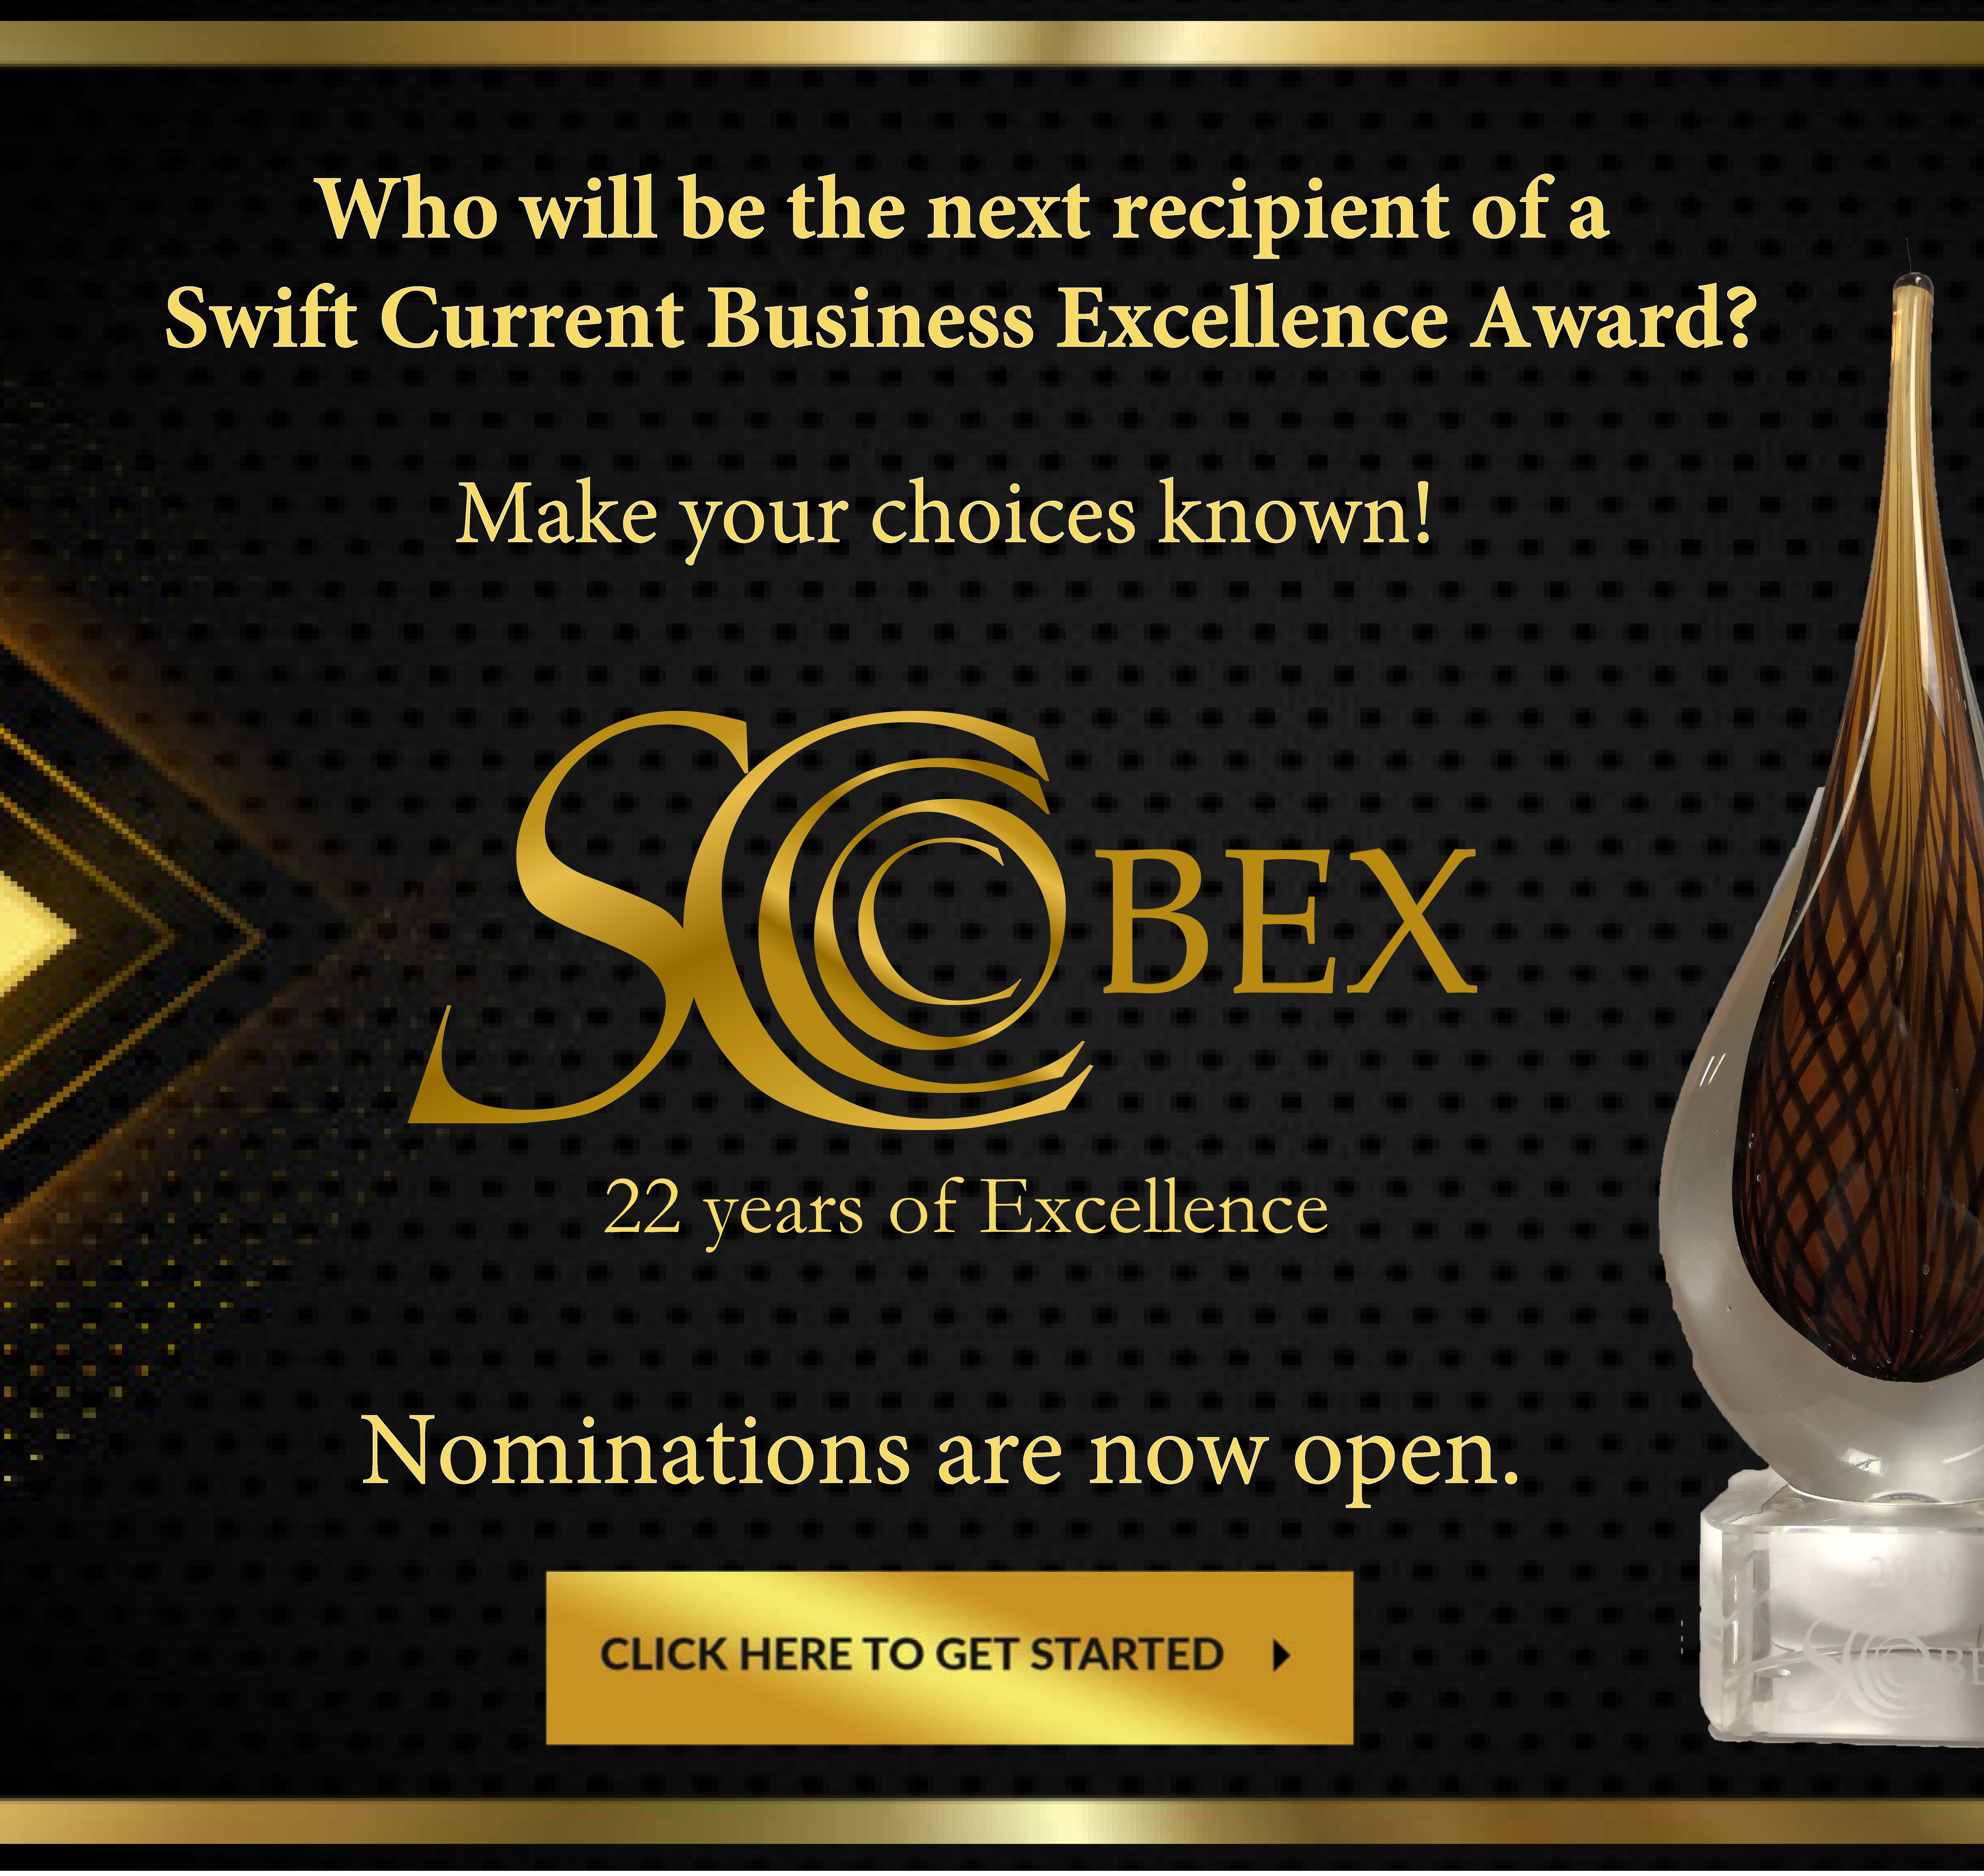 SCBEX-2020-nomination-creative.jpg